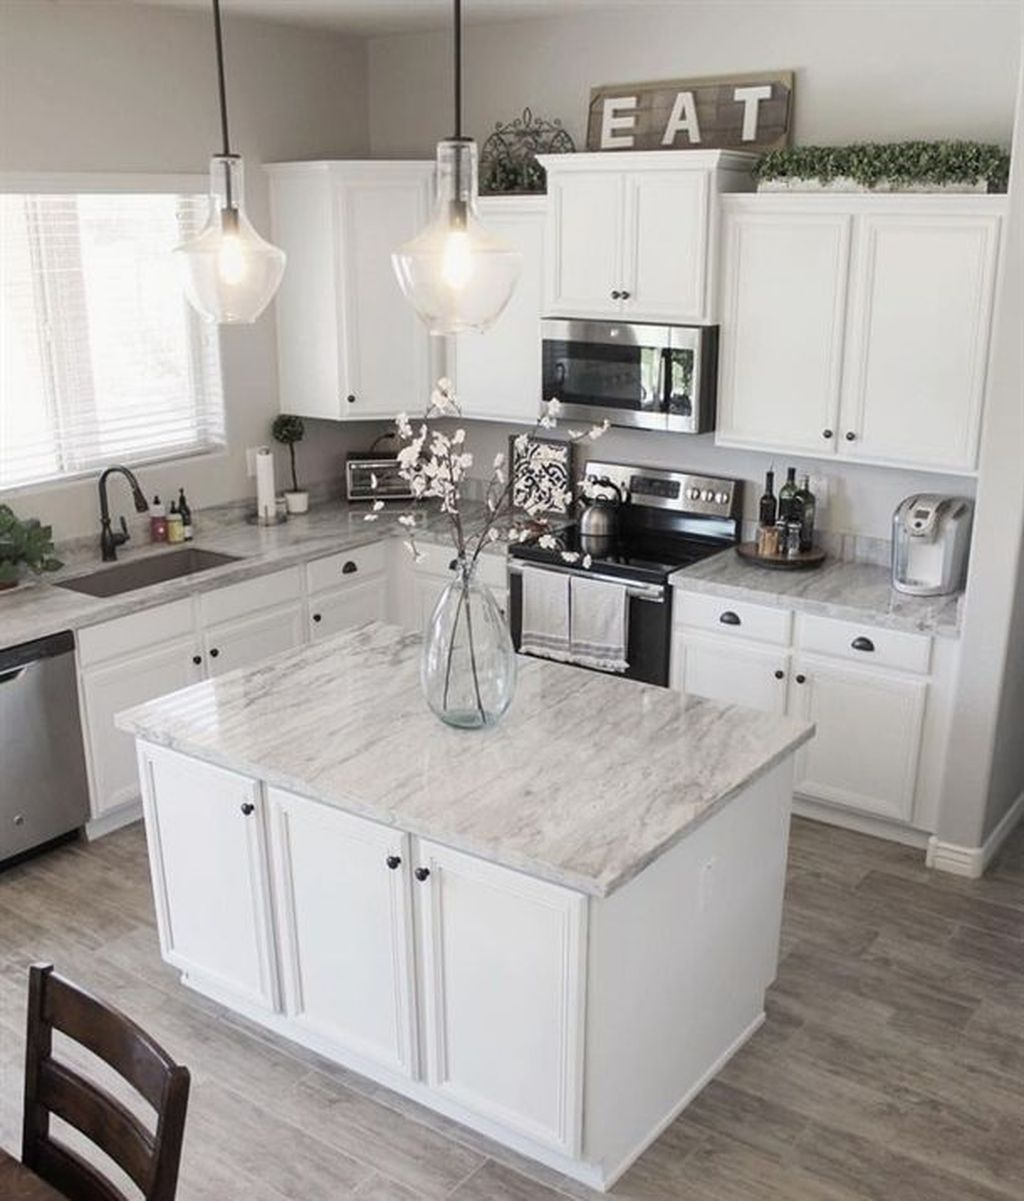 Classy Kitchen Remodeling Ideas On A Budget This Year 15